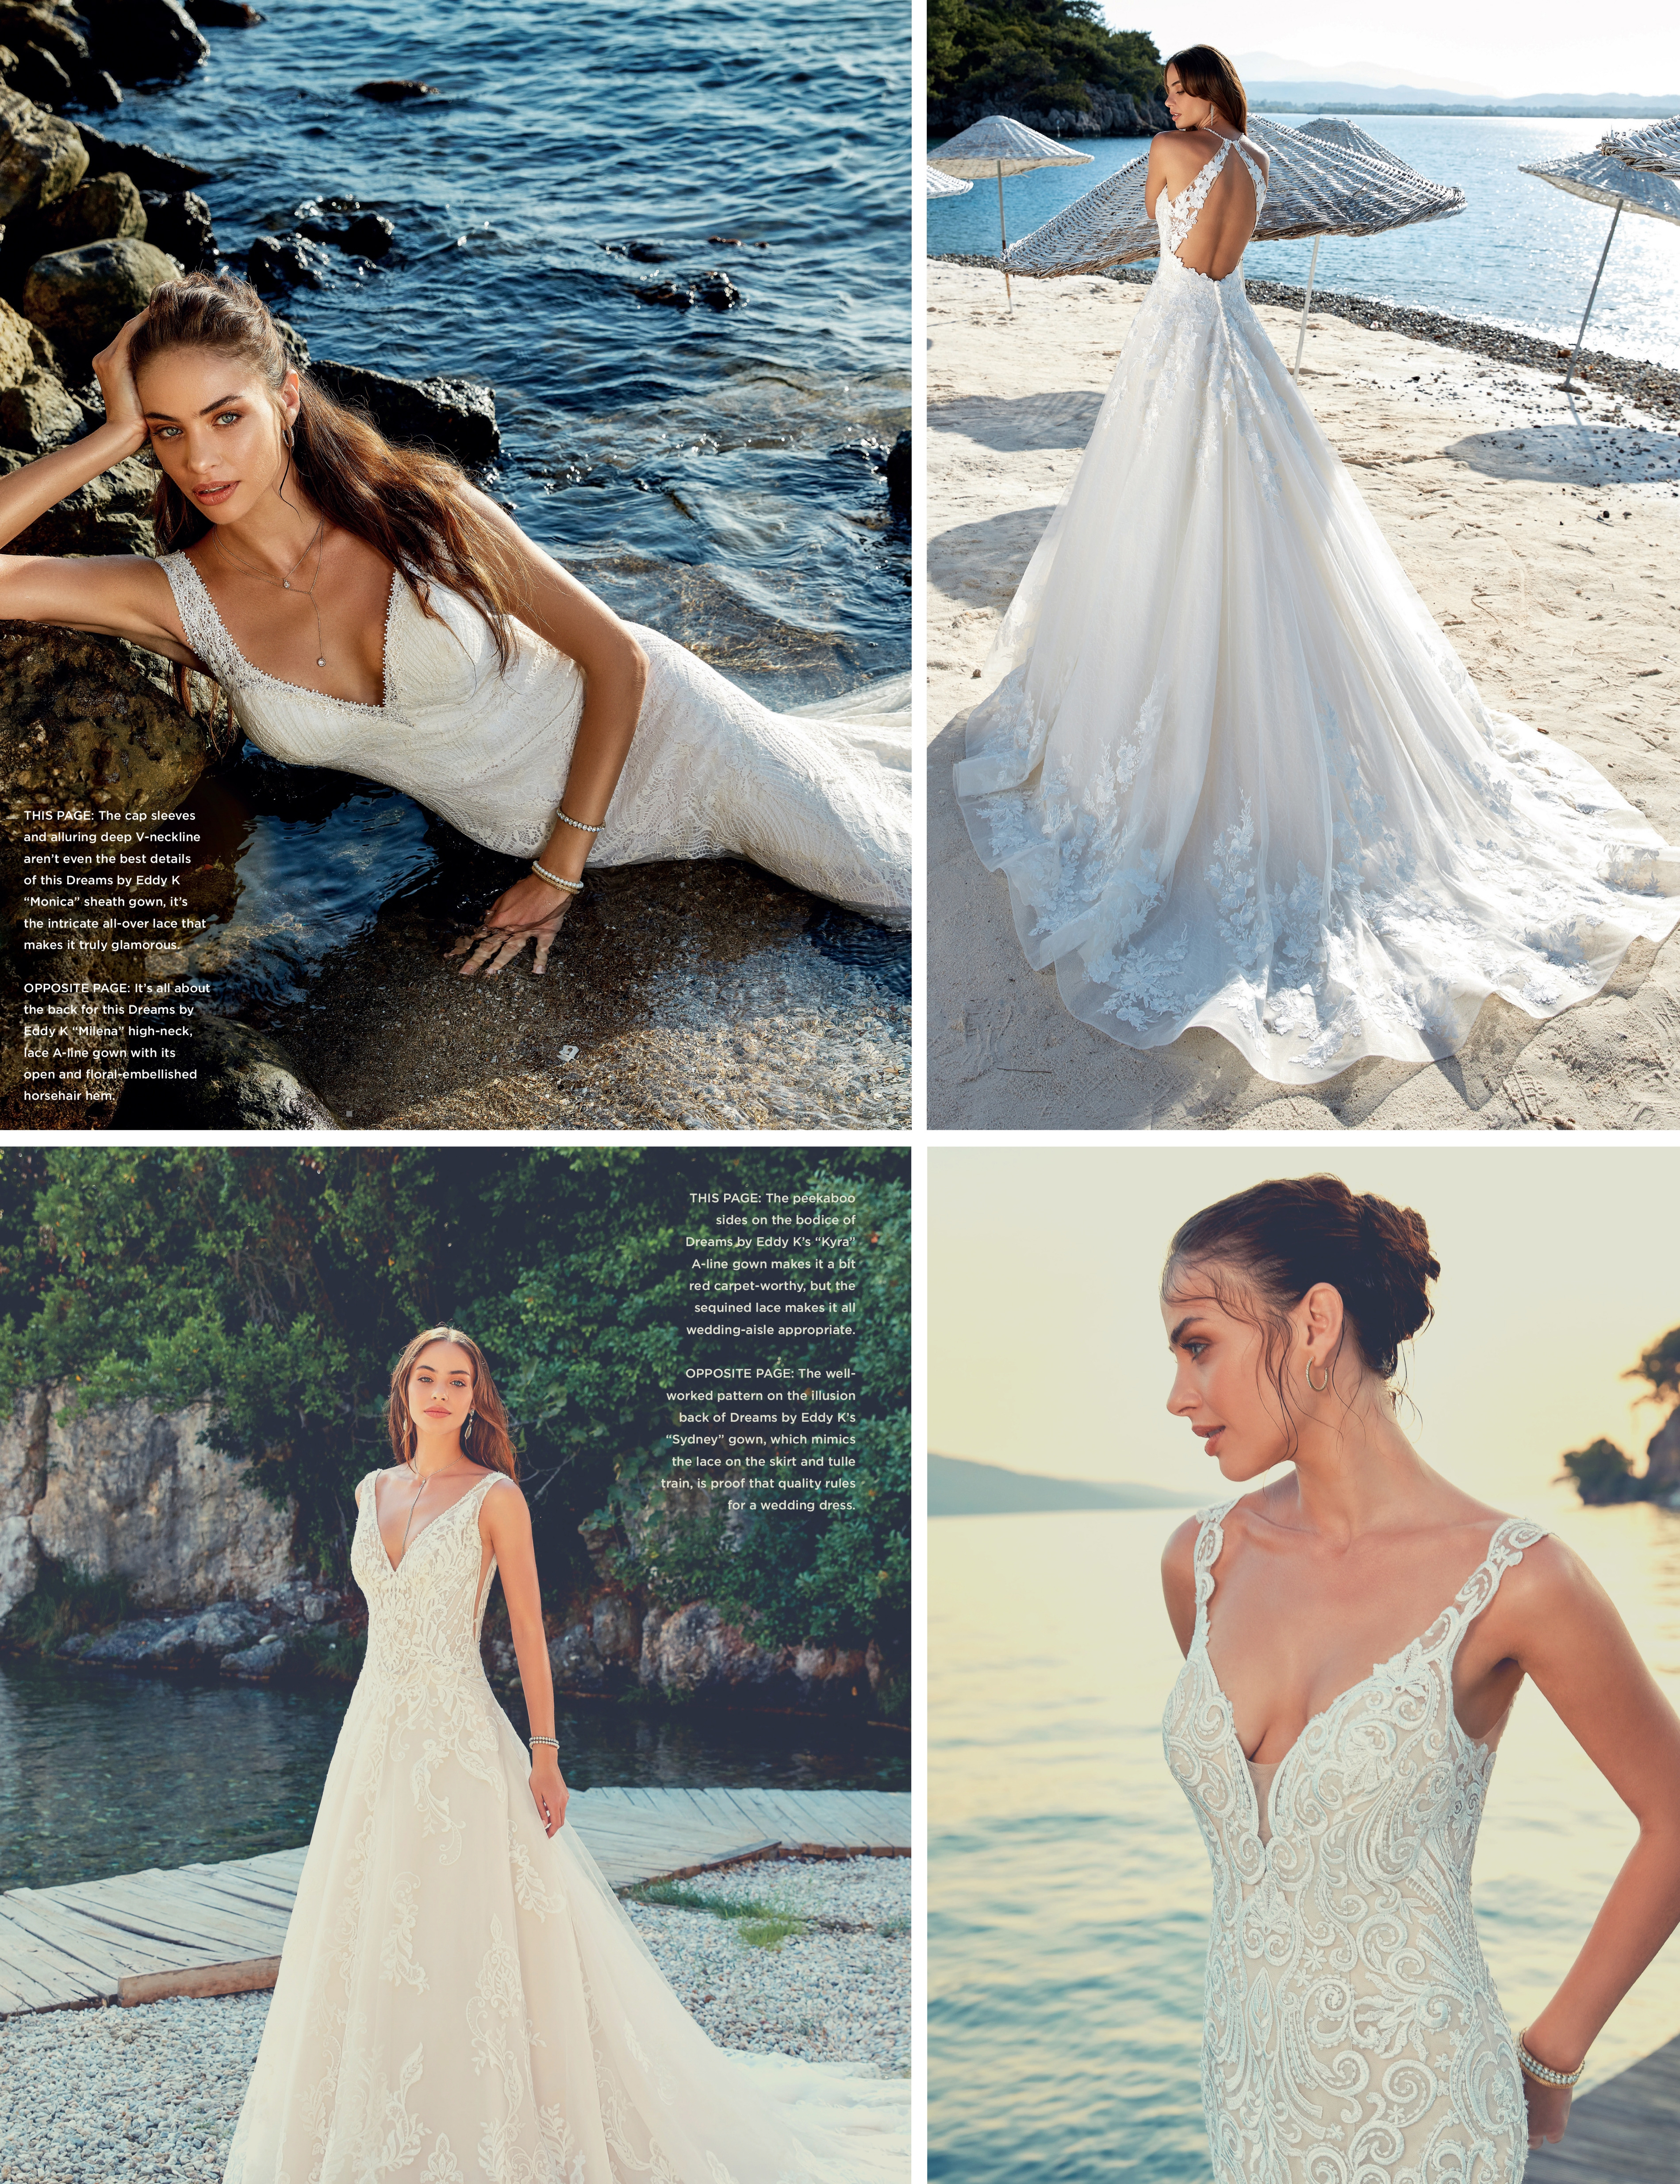 e49f05e1ba674 Whether you're sailing away for your destination wedding or getting married  close to home, you'll feel swept up in a fairytale in one of these Eddy K  Dreams ...